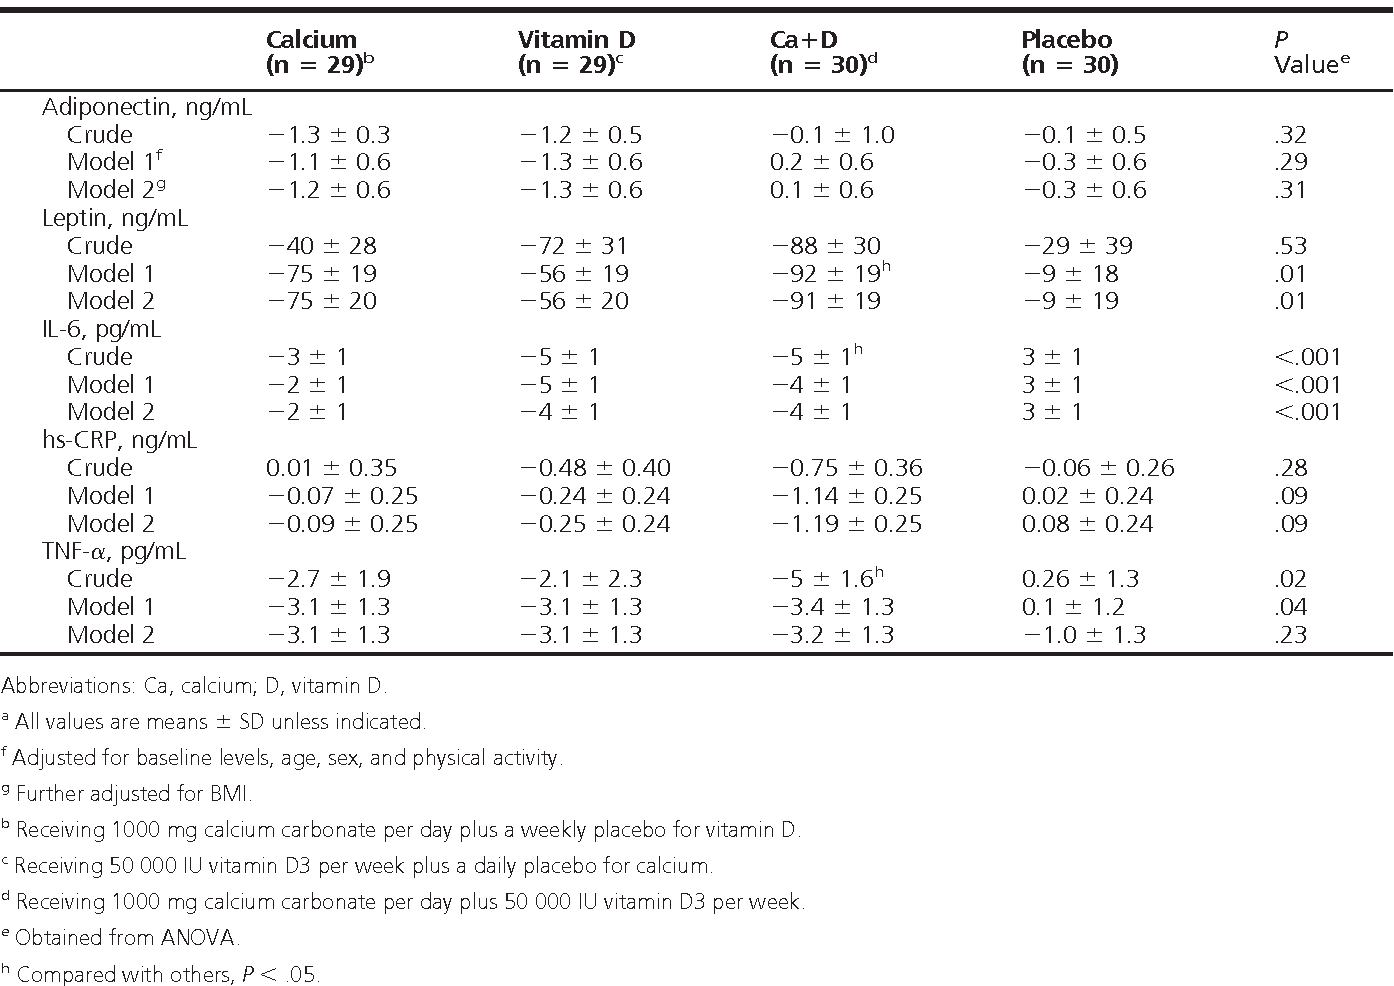 Table 4. The Effect of Vitamin D and Calcium Supplementation on Inflammation and Adipocytokine Biomarkersa